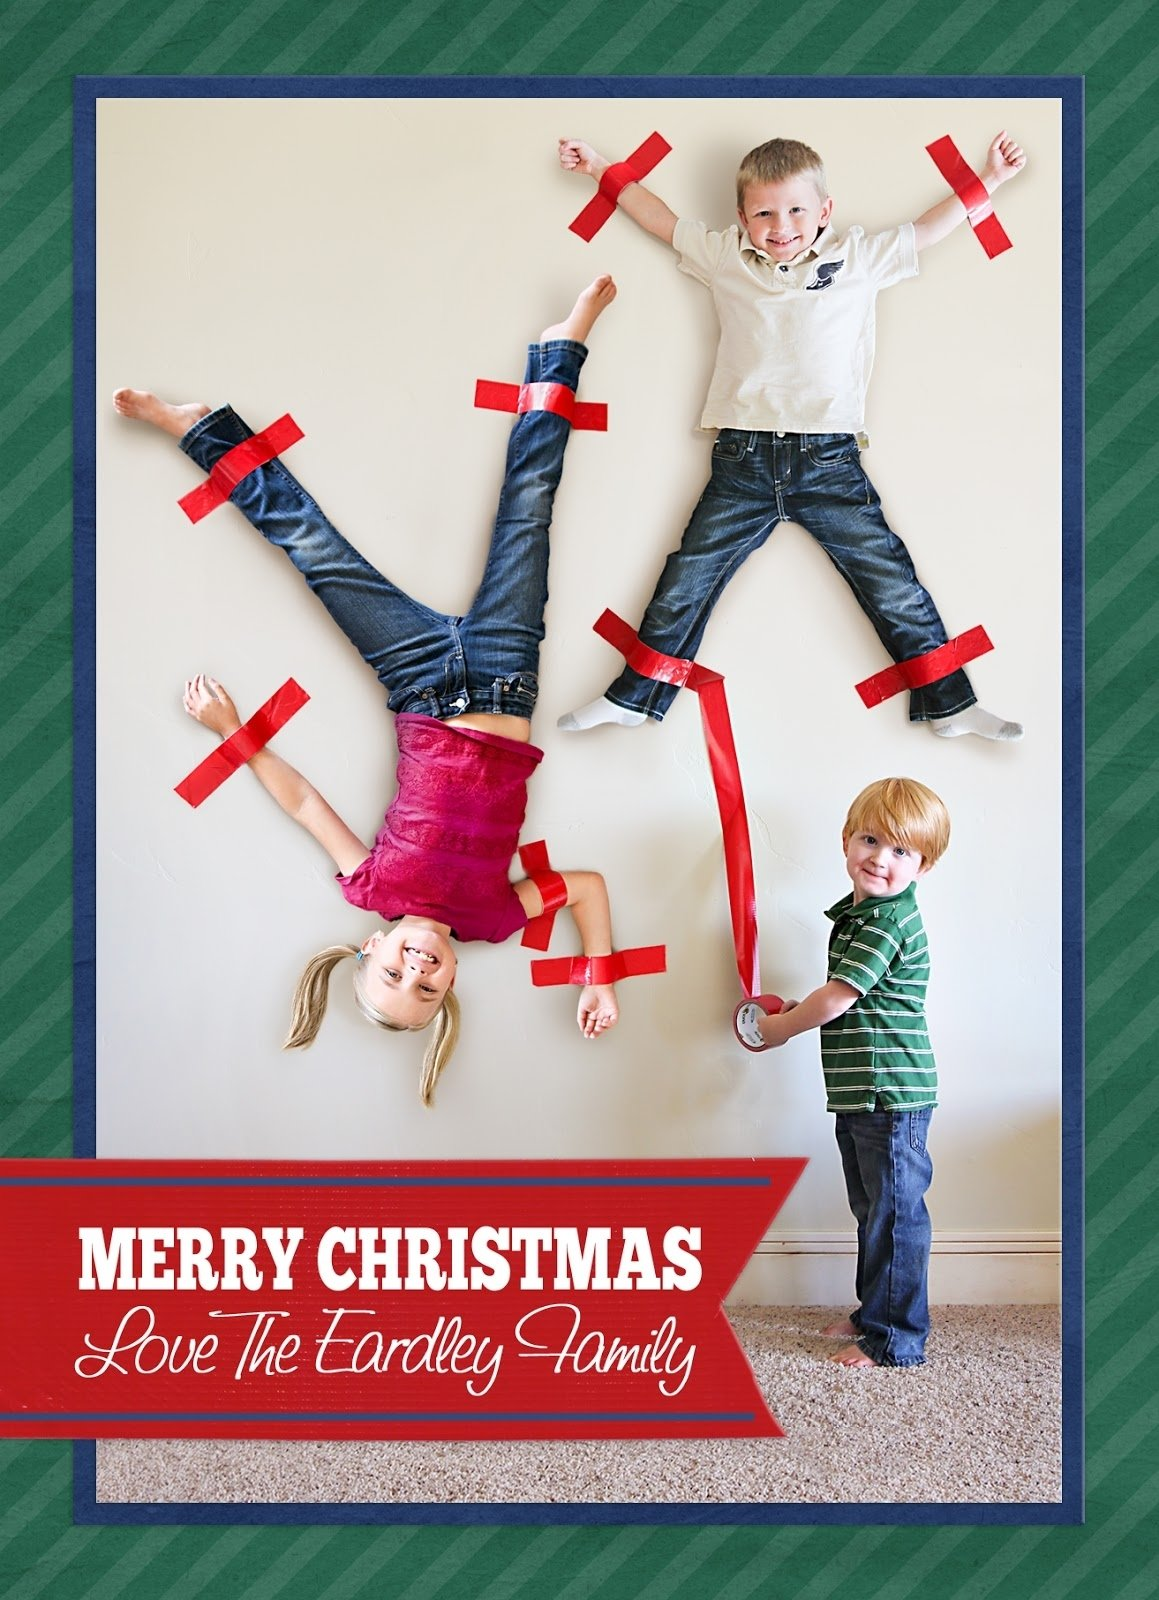 10 Cute Christmas Card Photo Ideas For Kids 37 awesome christmas card ideas you should steal scrapbook blog 1 2020